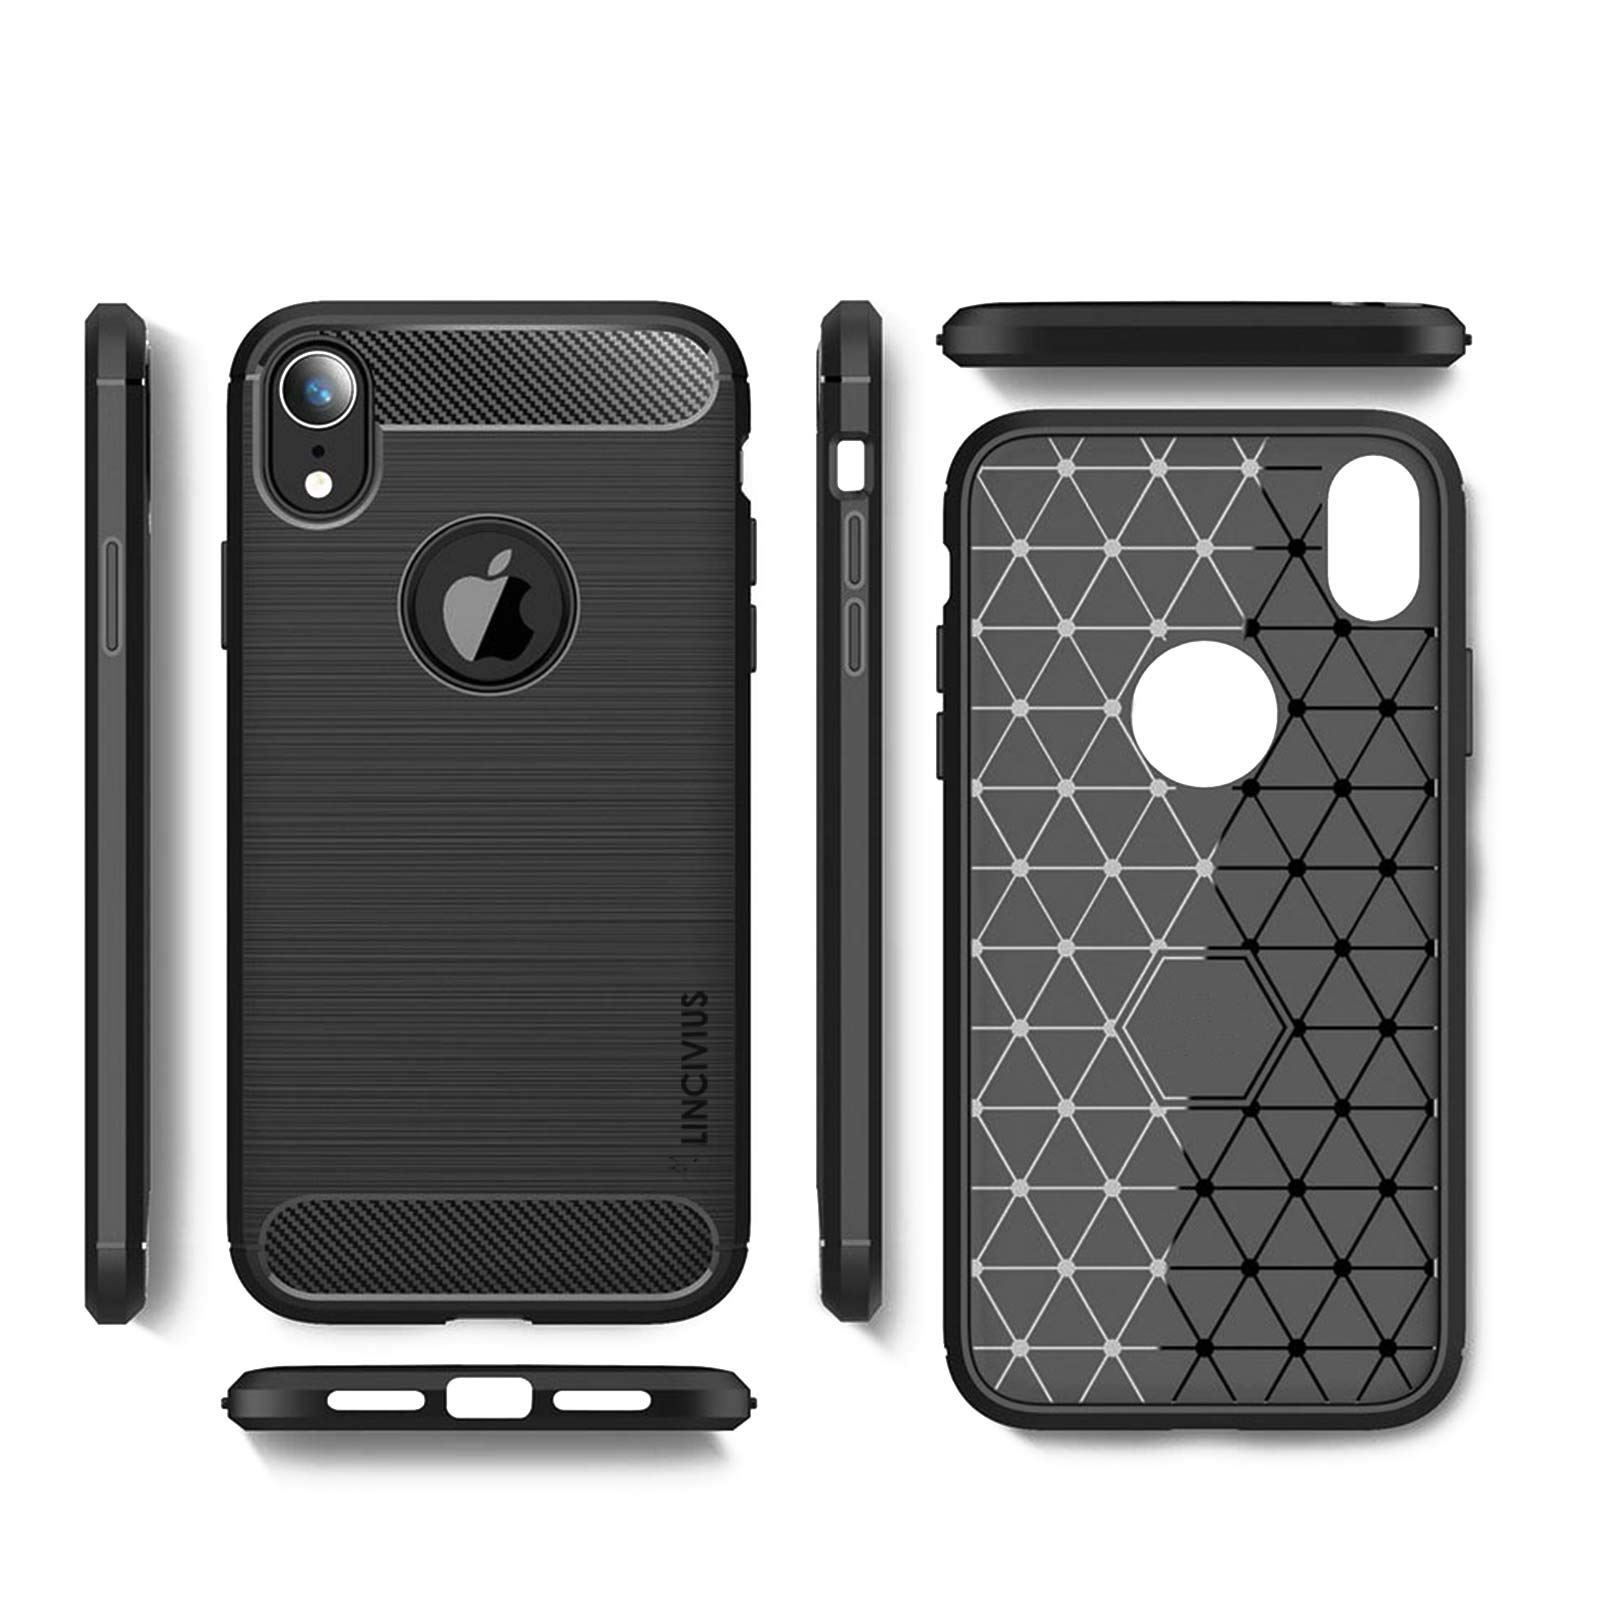 LINCIVIUS  Coque Apple iPhone XR [TPU Brushed Carbone] Protection Coque Carbon iphone XR Housse Etui Accessoires Silicone Souple Hybride Design Anti Choc